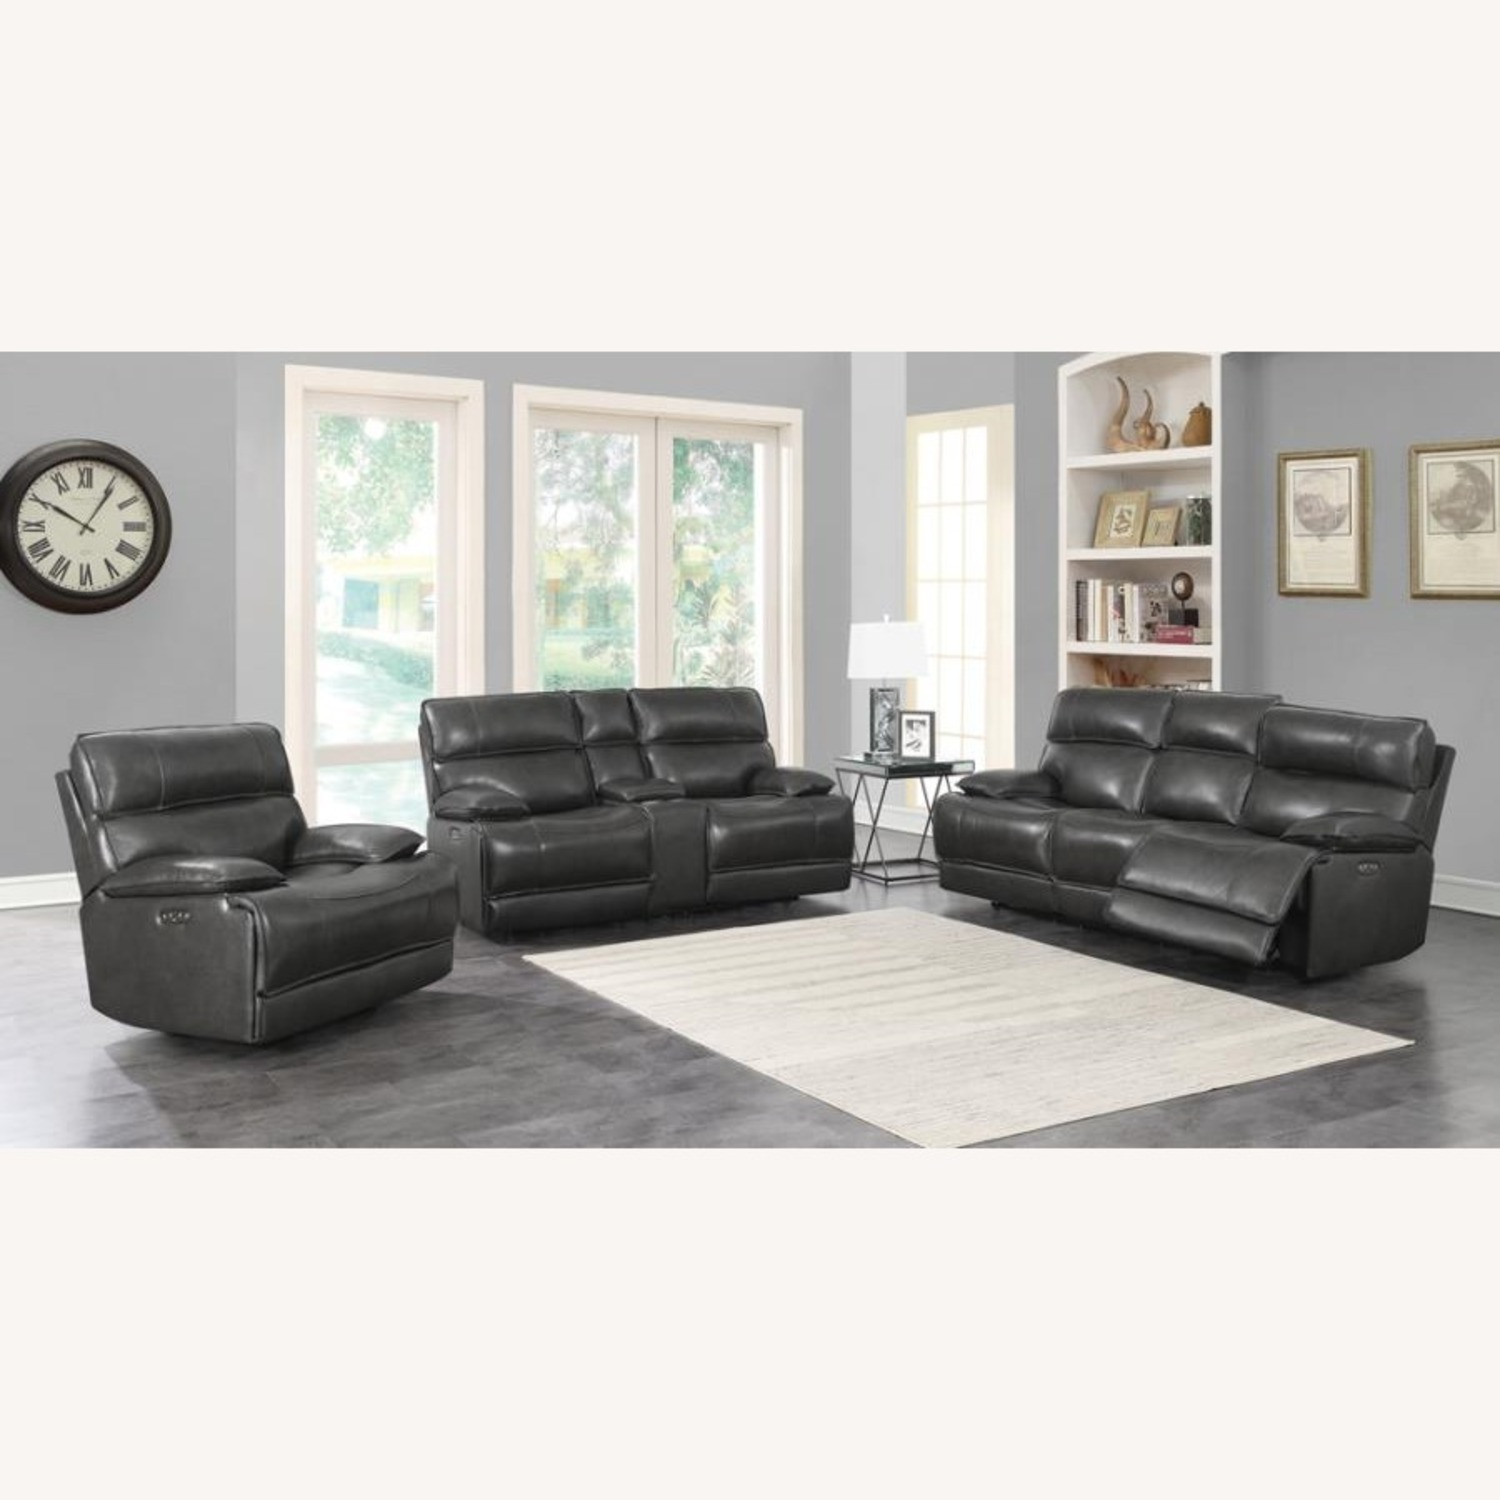 Power Glider Recliner In Charcoal Leather - image-9